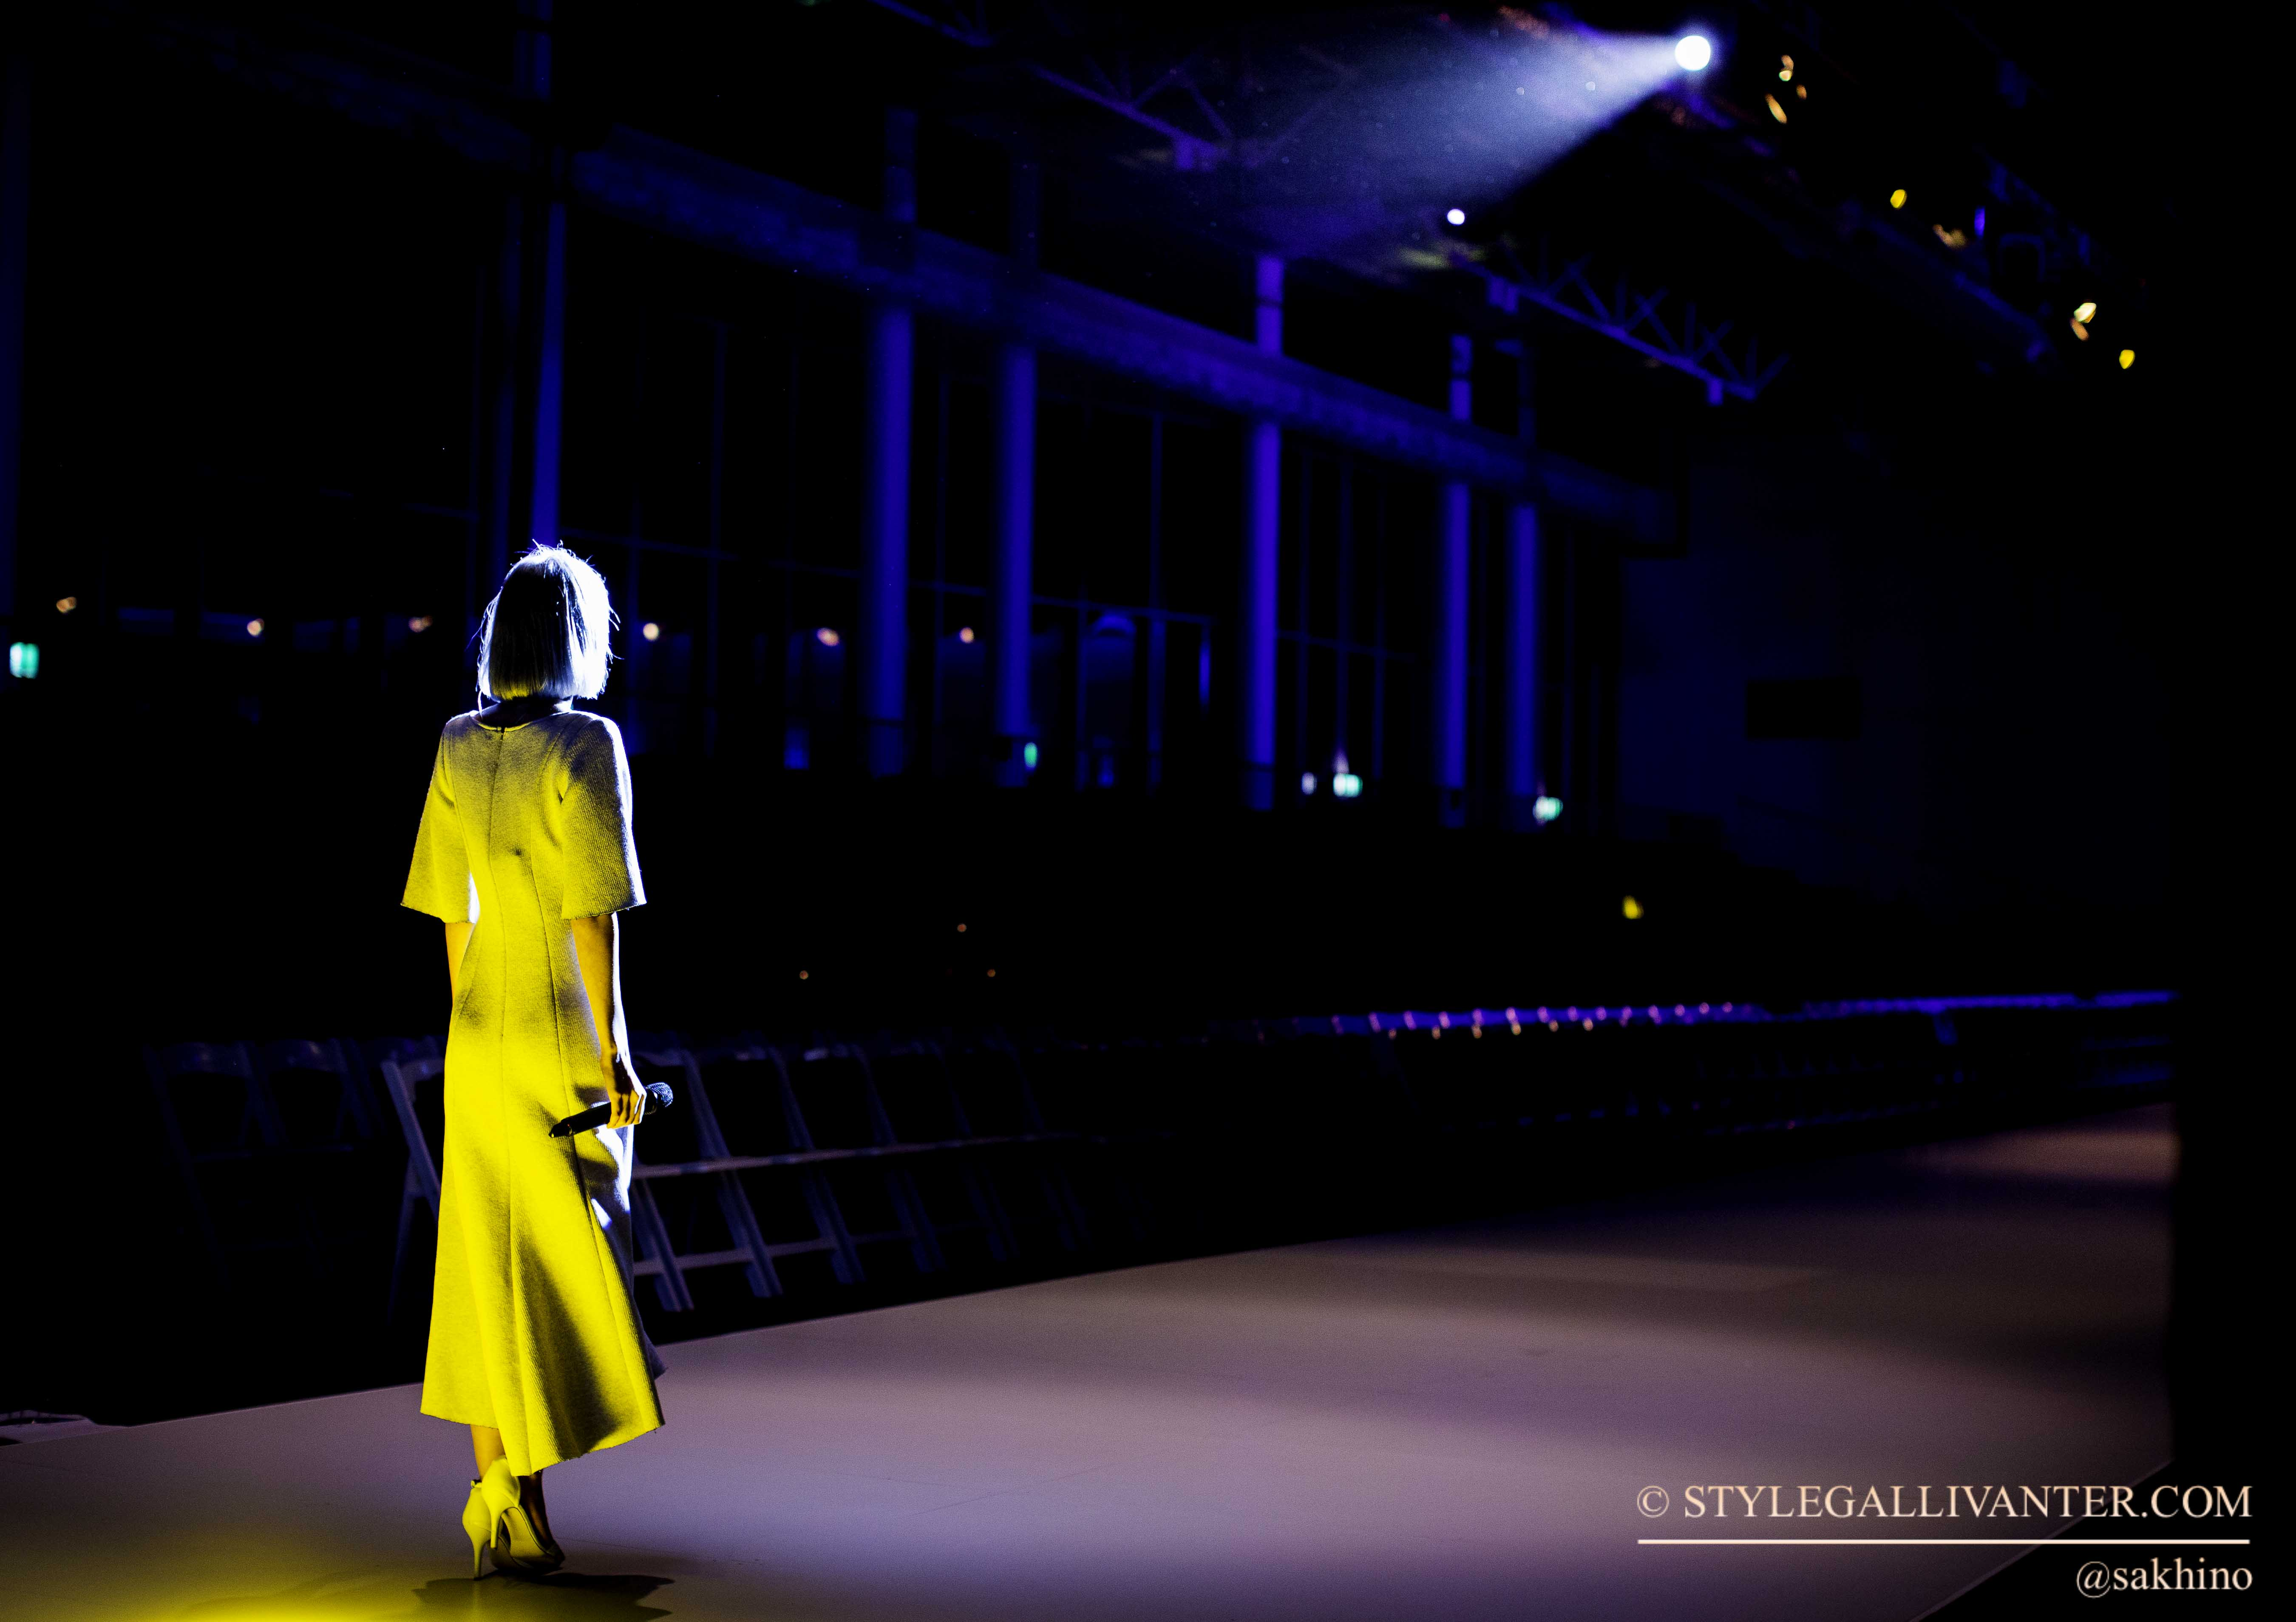 stylegallivanter.com-copyright-2015_not-to-be-used-without-permission_fashfest-2015-audi_fashfest-2015-backstage-3